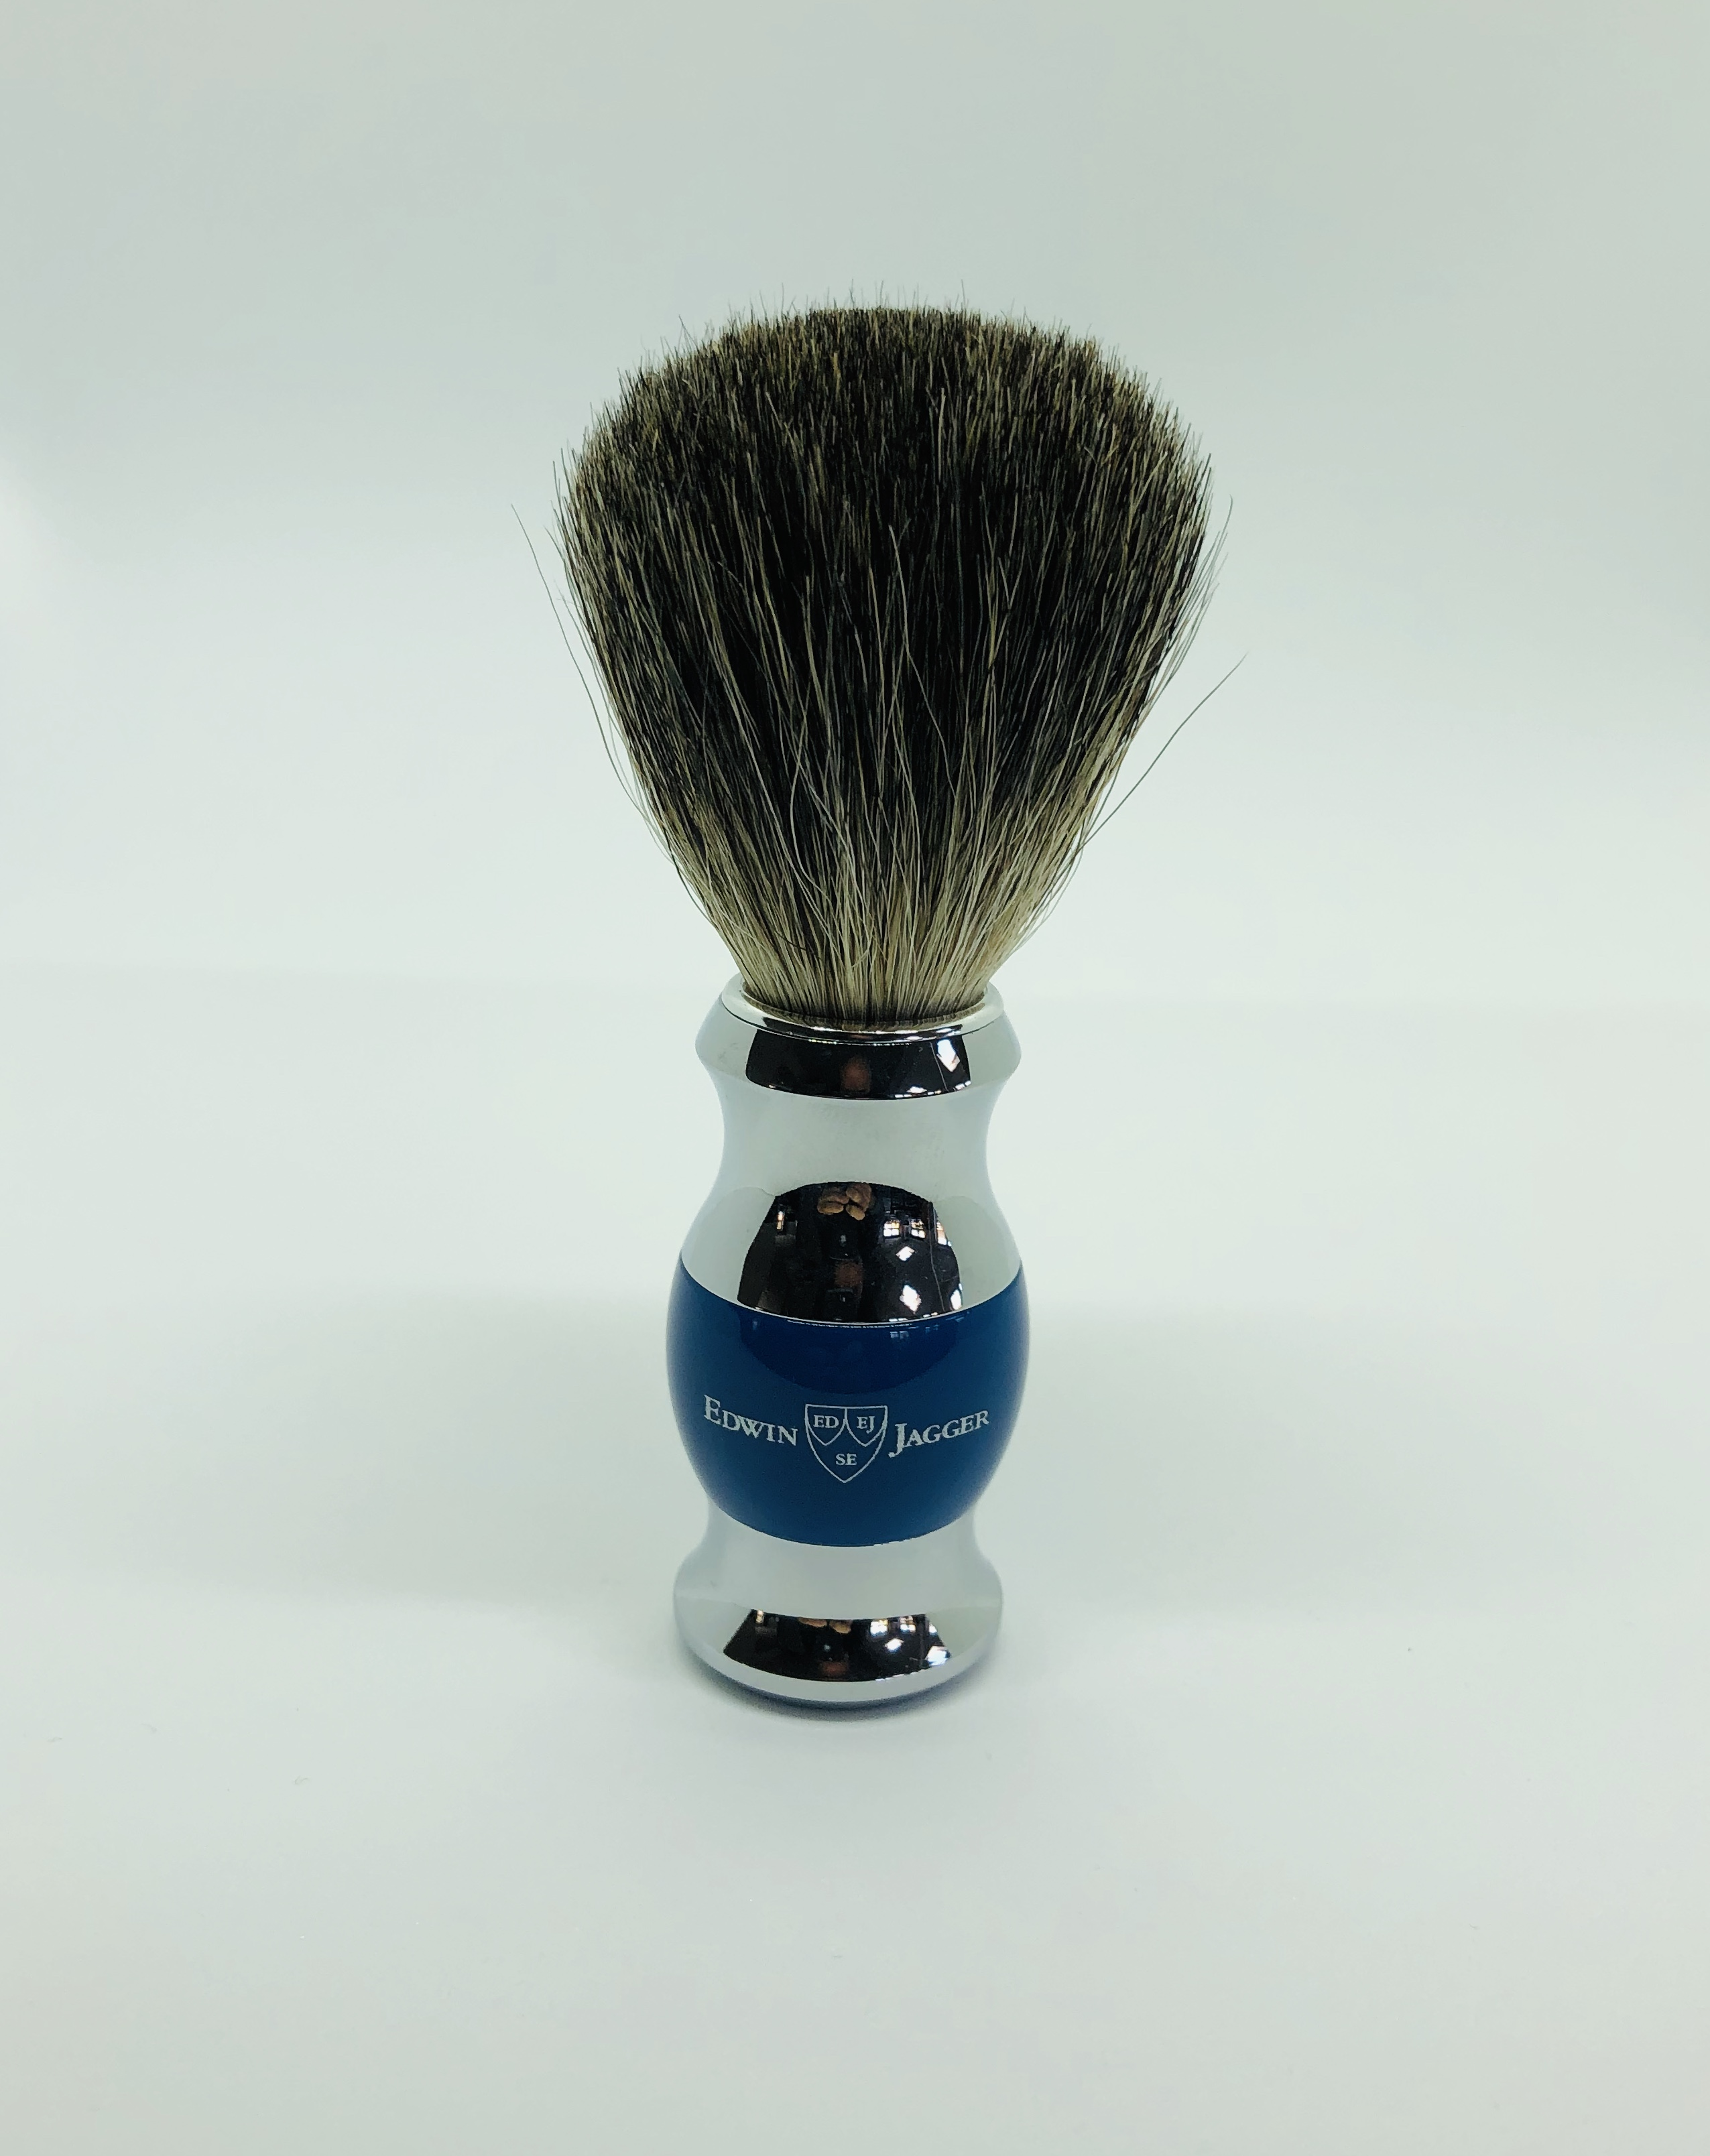 Edwin jagger 2 part chrome pure badger brush